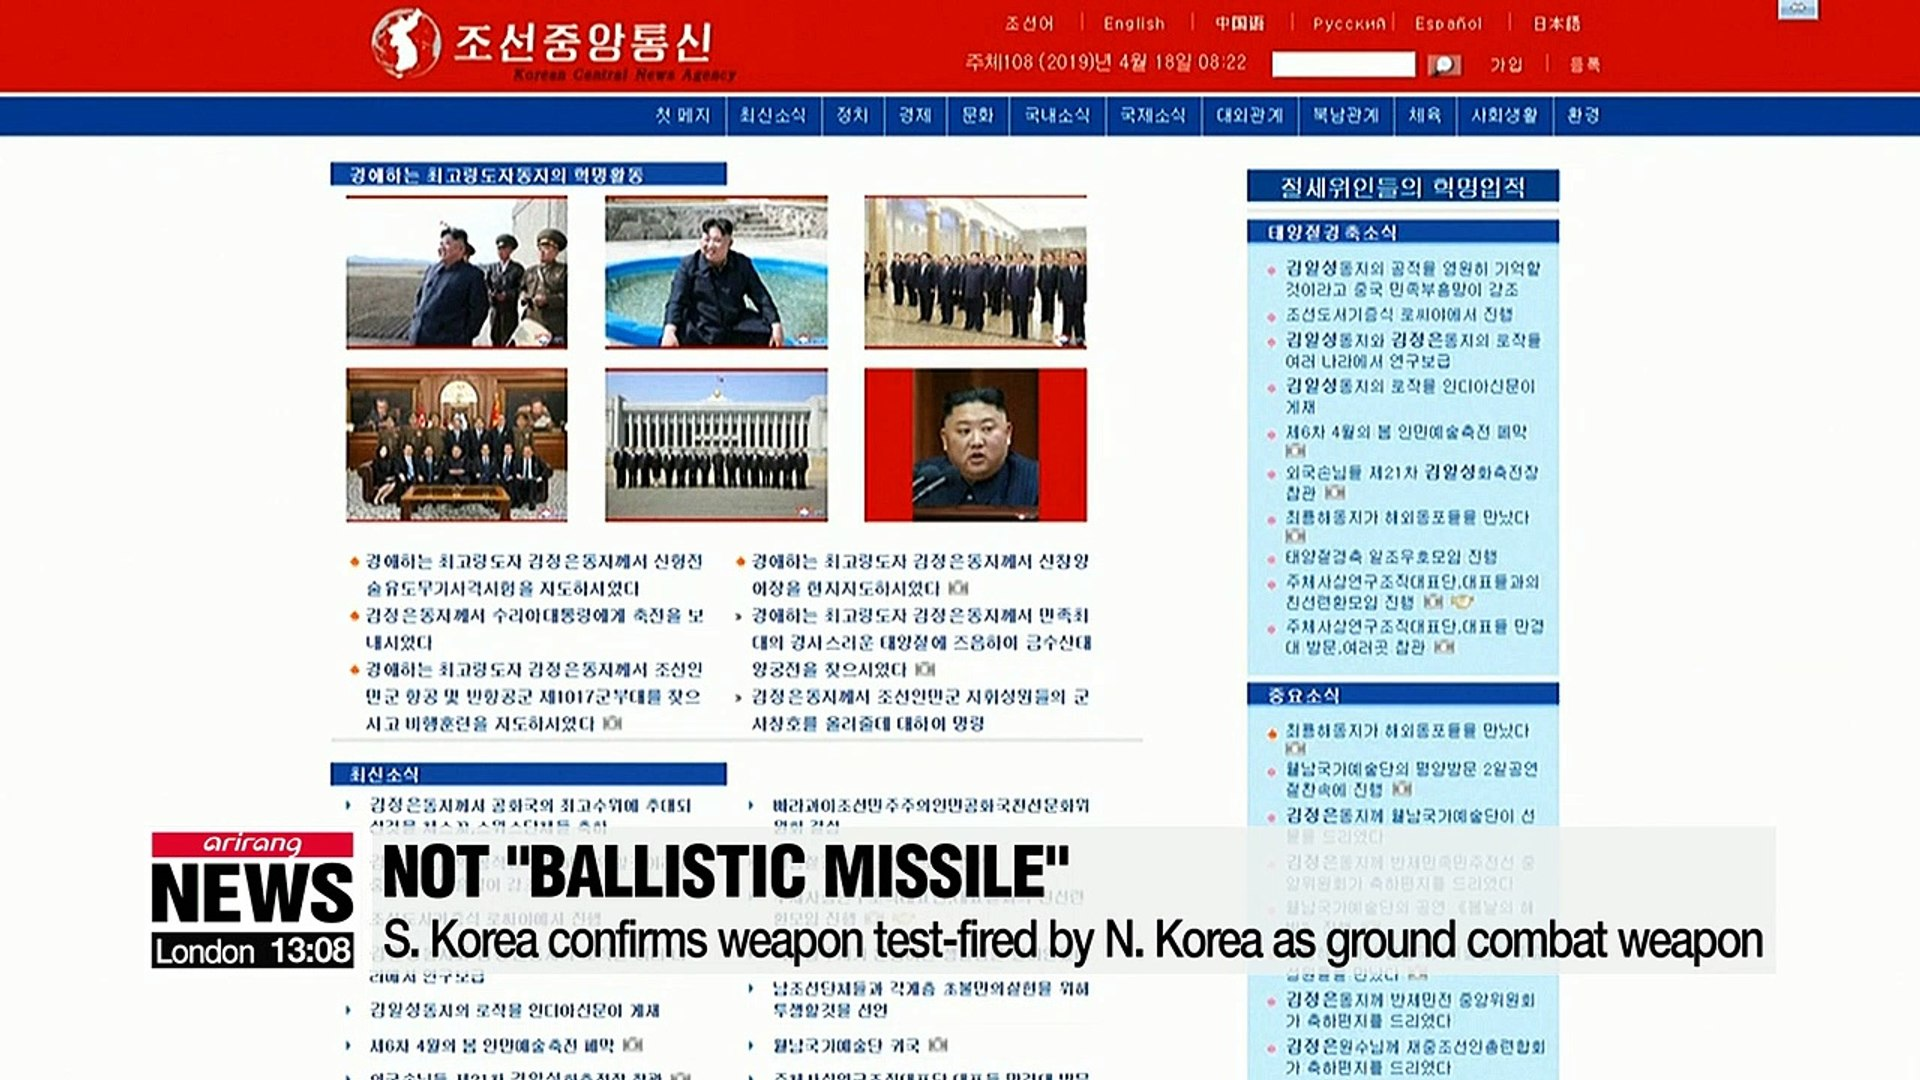 S. Korea confirms weapon test-fired by N. Korea as weapon of ground combat